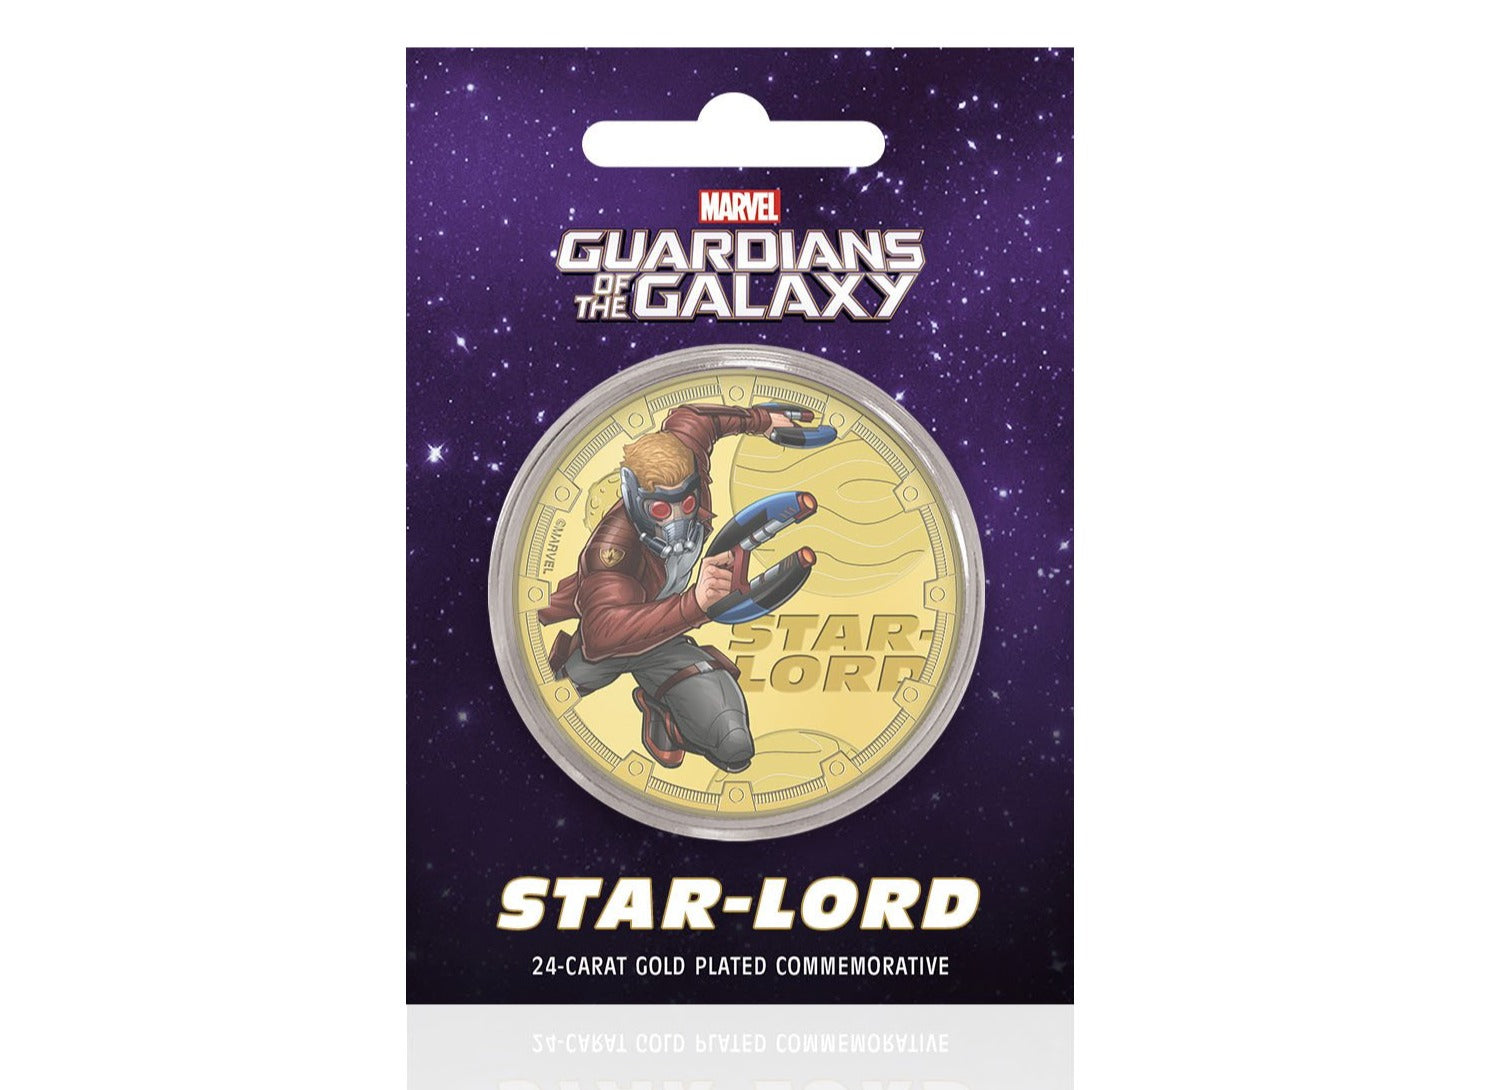 Marvel Guardianes de la Galaxia - Star-Lord - Moneda / Medalla conmemorativa acuñada con baño en Oro 24 quilates y coloreada a 4 colores - 44mm